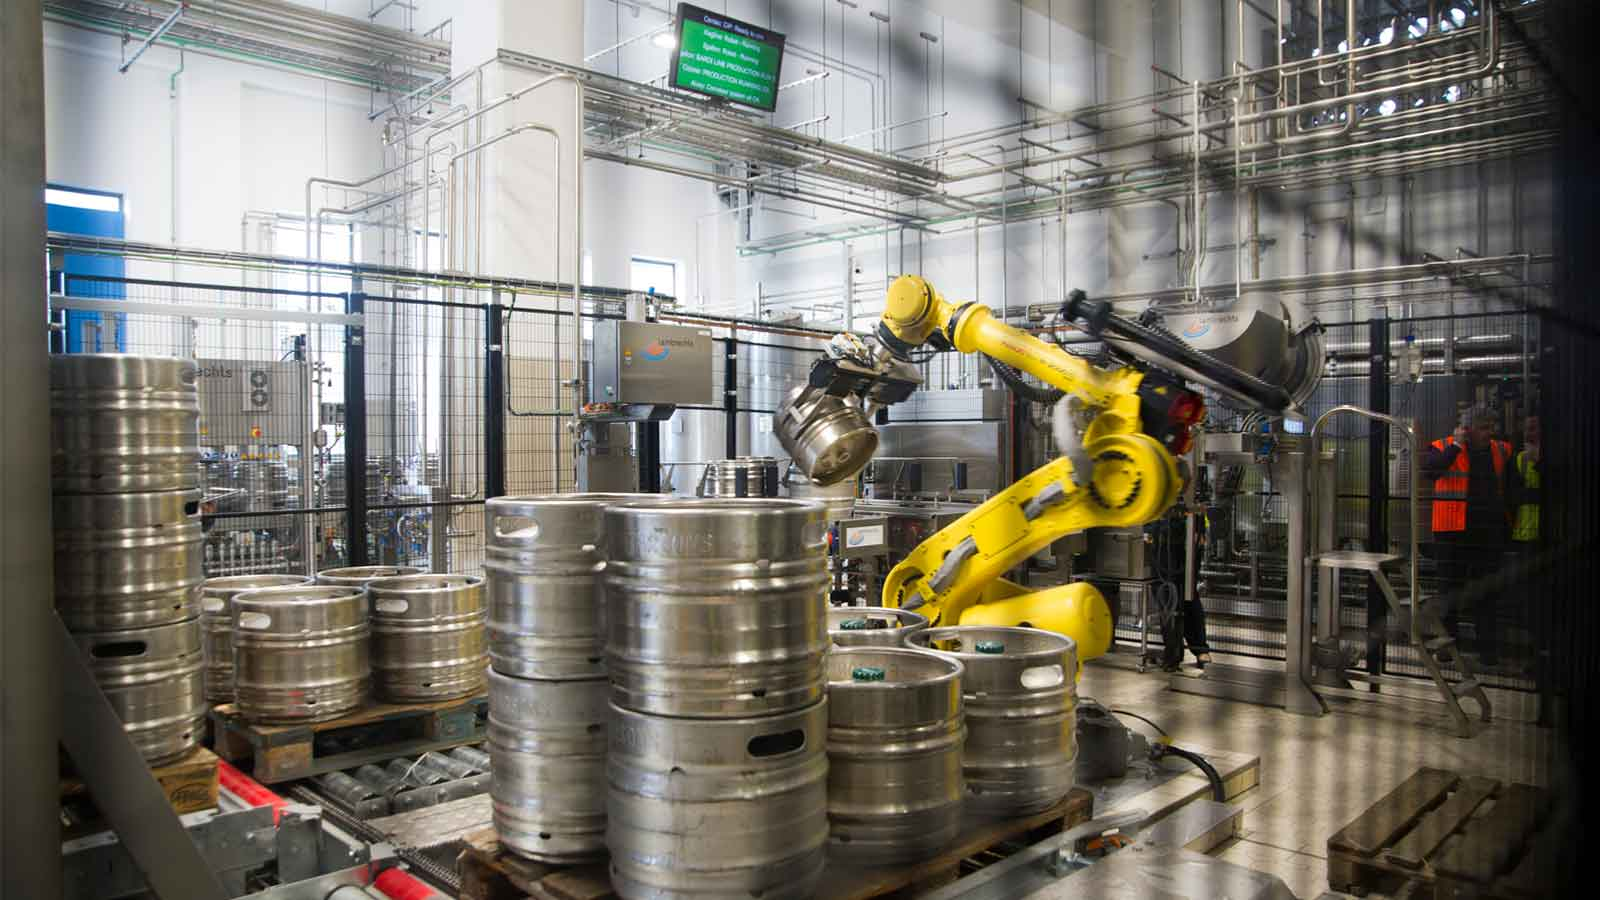 Simonds Farsons Cisk commissions robot handling technology in new kegging plant